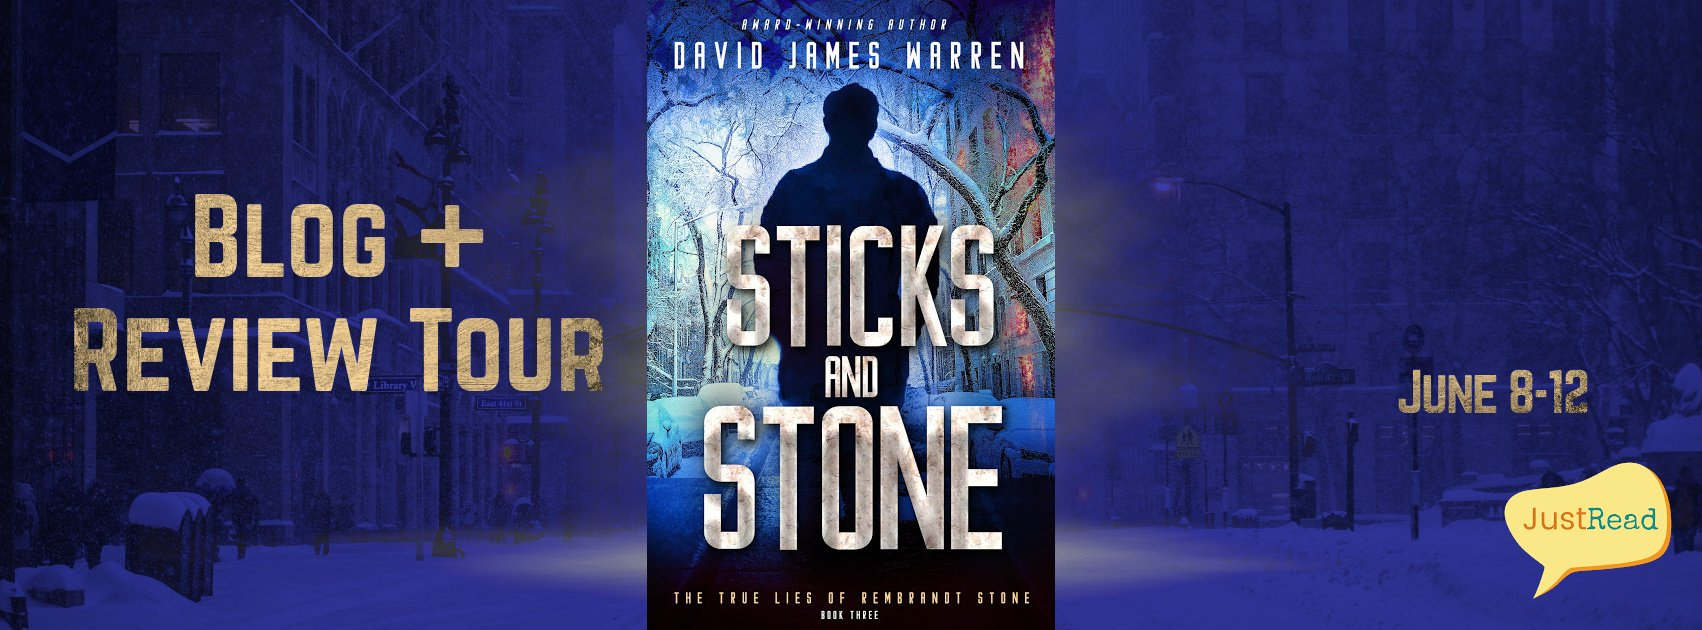 Sticks and Stone JustRead Blog + Review Tour